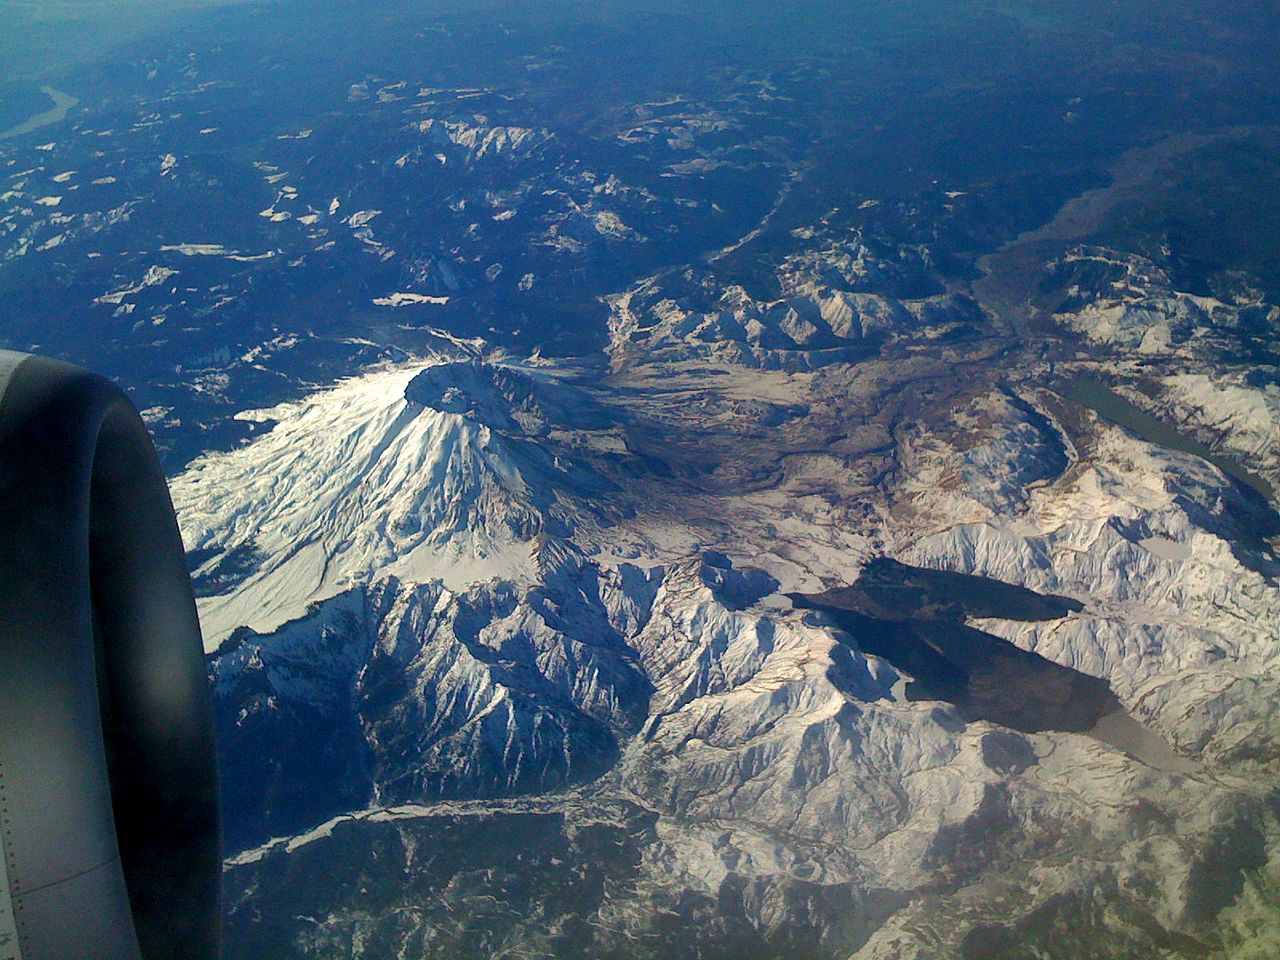 potassium argon dating mt st helens In this article, we will be going over potassium-argon dating (k-ar) to explain the flaws, assumptions, and cherry-picking in dating methods that are said to be - keith swenson, author who went on the expedition to gather igneous rock with dr steven austin, is the lava dome at mount st helens really a.